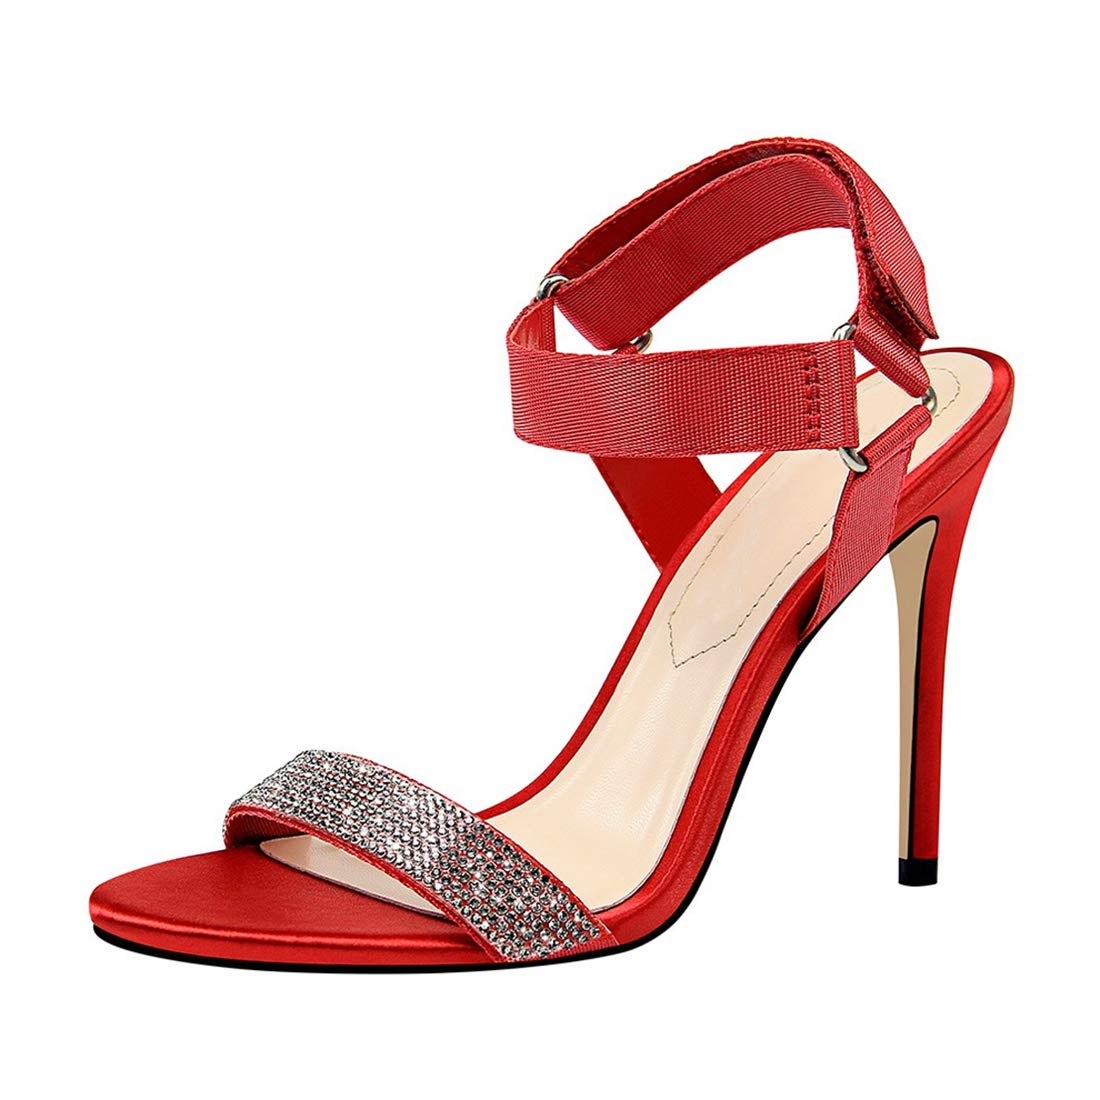 MGM-Joymod , Mules Mules Femme B0168656LW Femme Red a919fa7 - shopssong.space